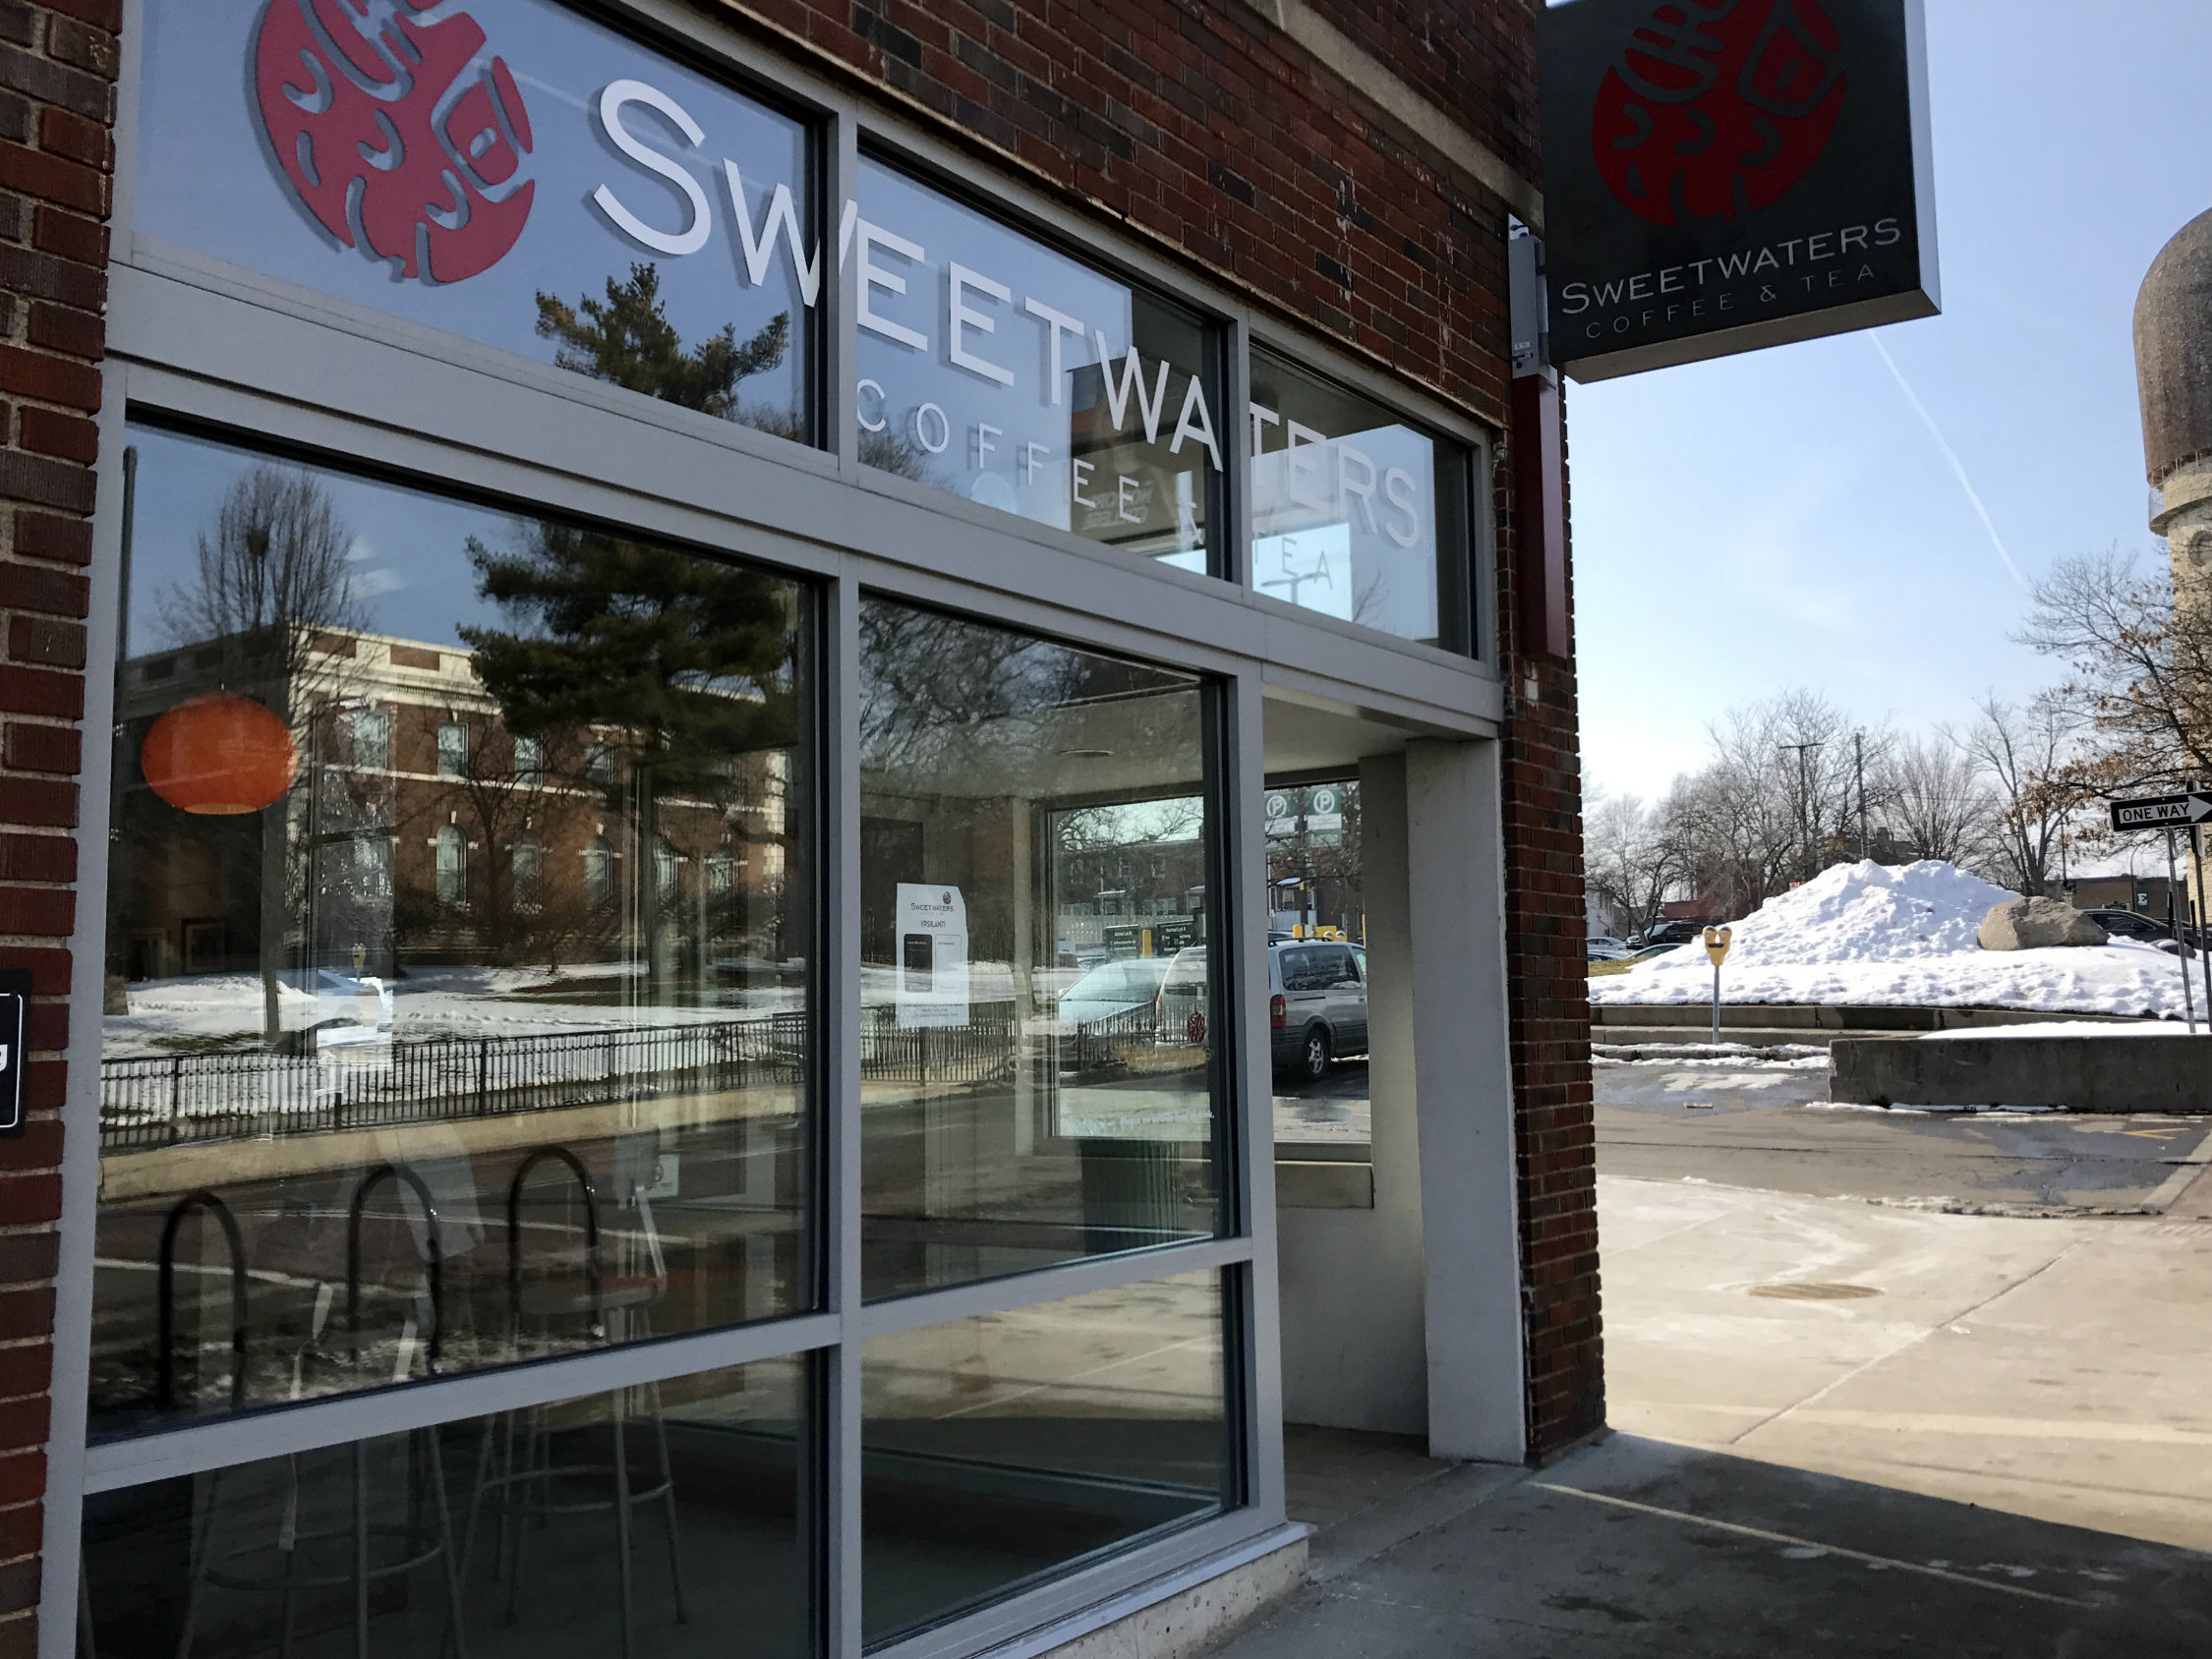 Swteewaters Coffee